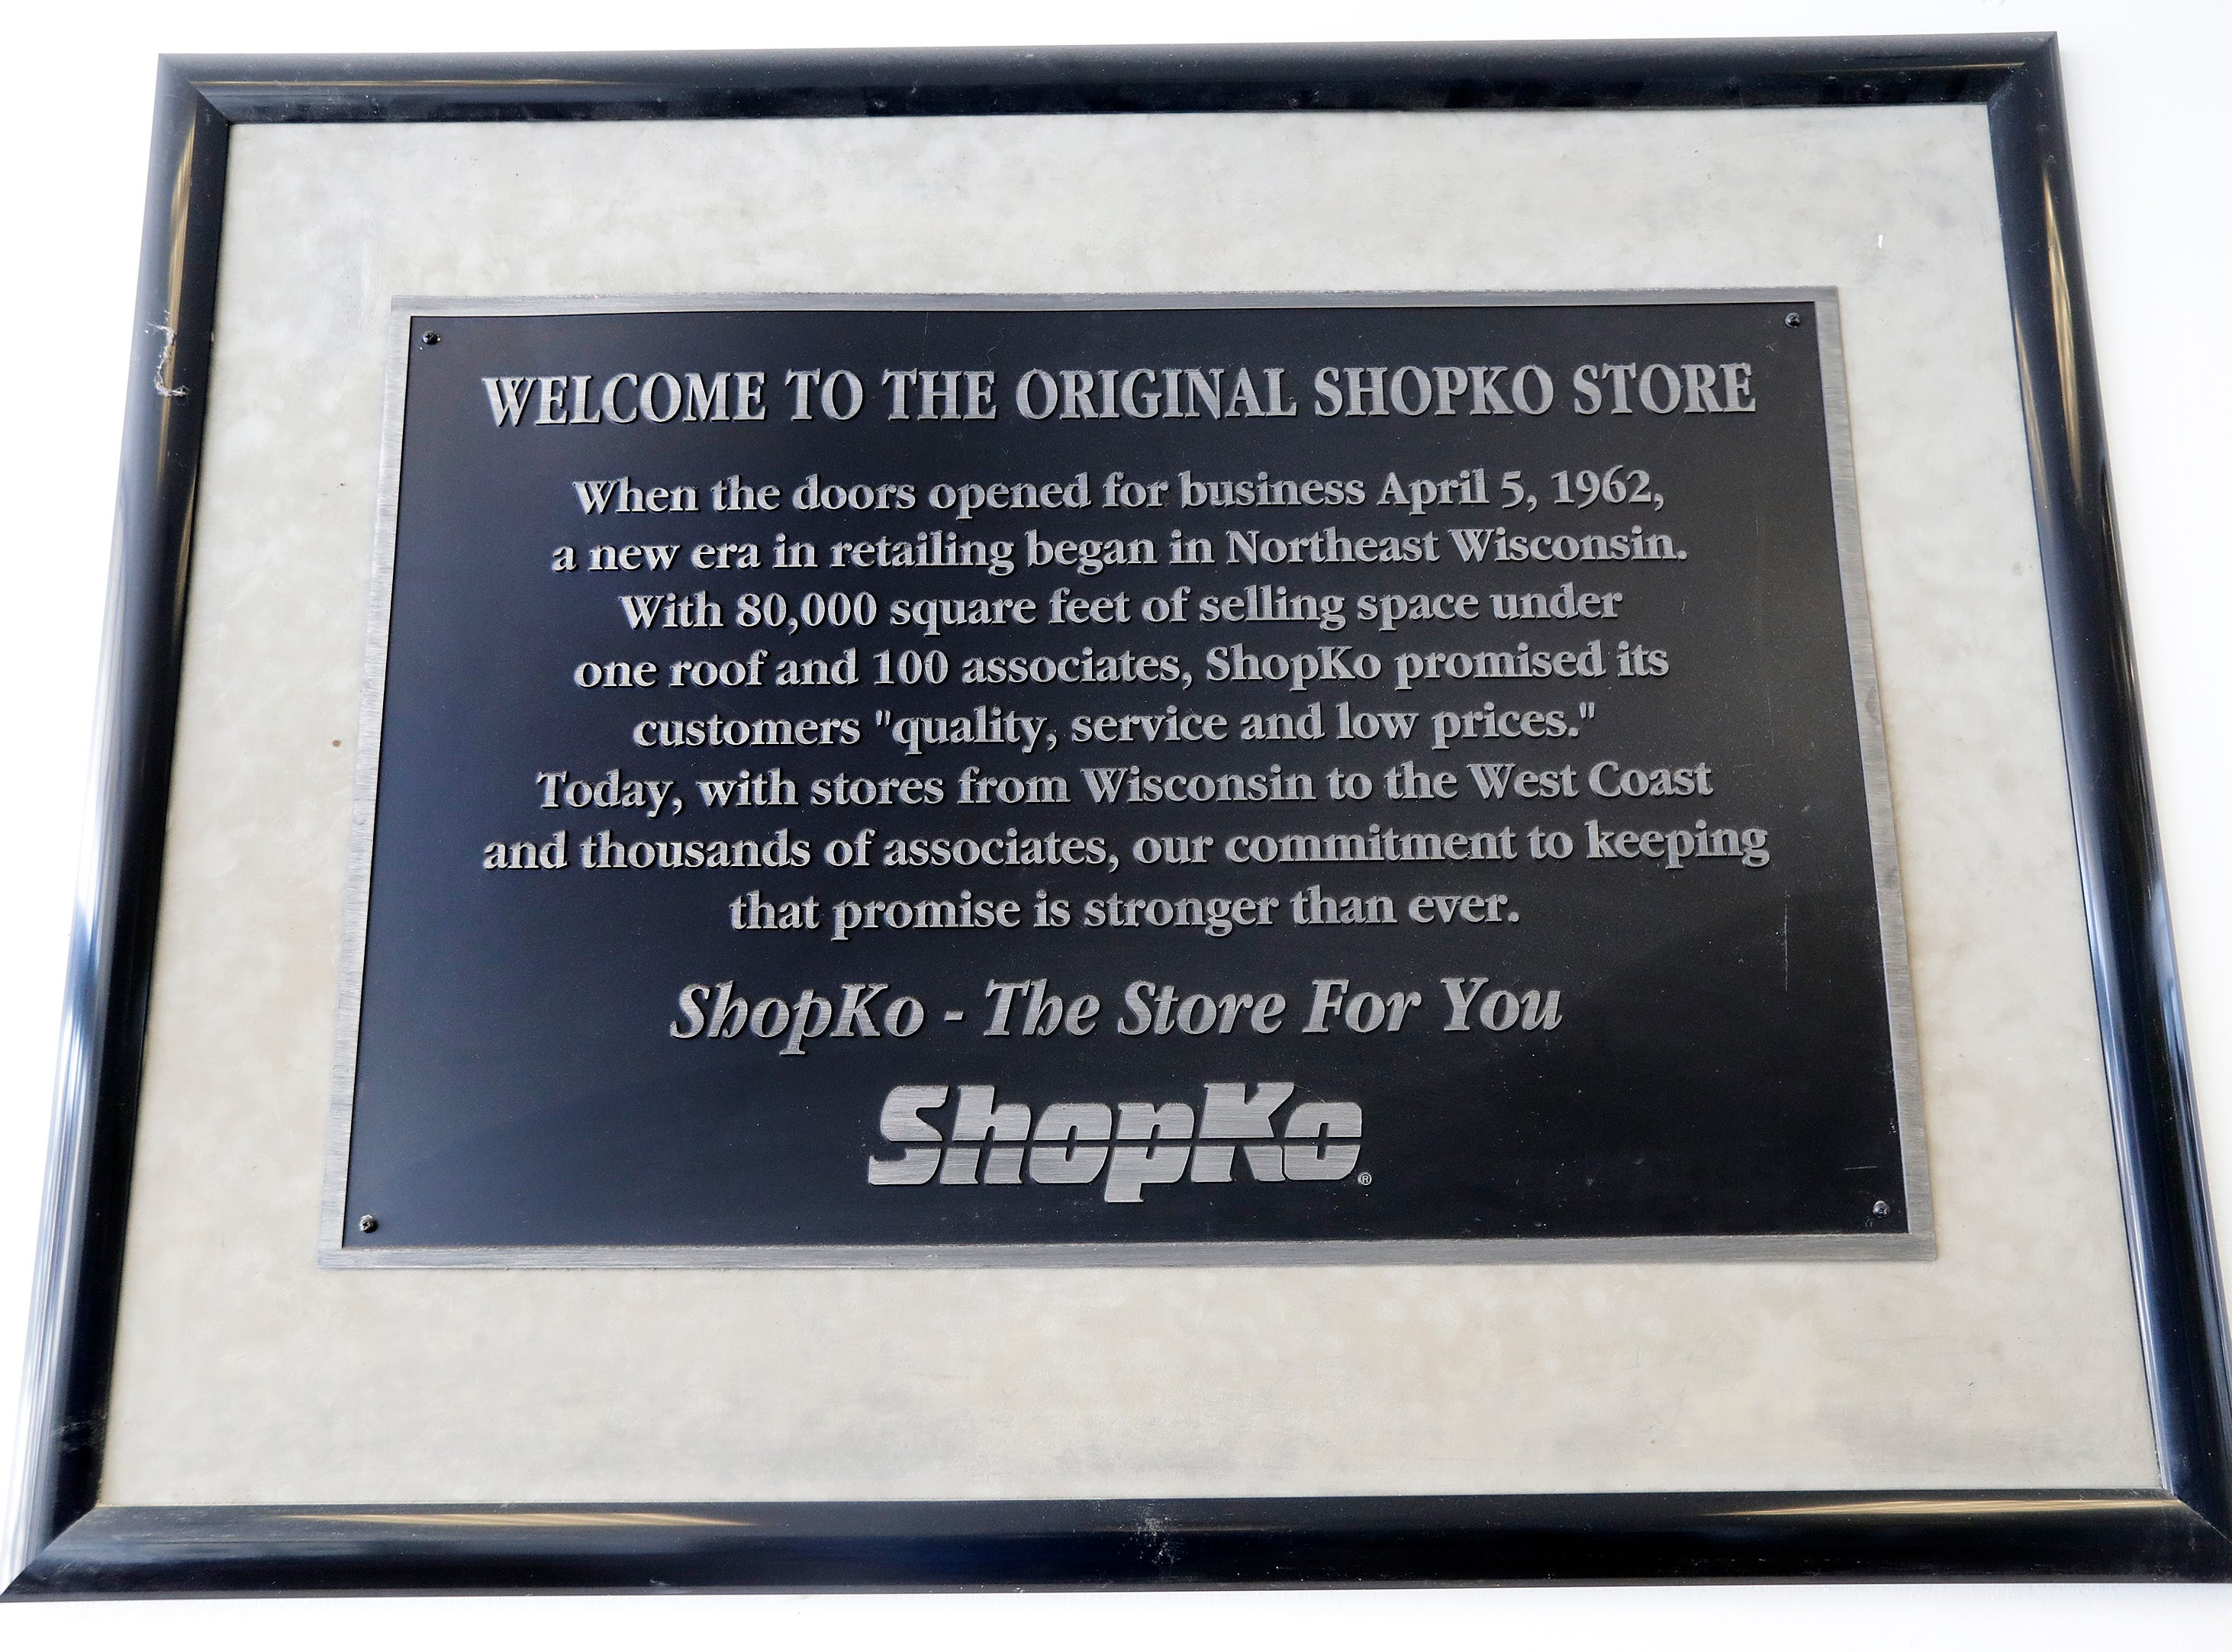 A sign by the entrance of the original Shopko store is shown on Wednesday, January 16, 2019 in Green Bay, Wis. Shopko filed for chapter 11 bankruptcy on Wednesday and announced it will close 105 stores, including the company's original store on Military Ave in Green Bay.